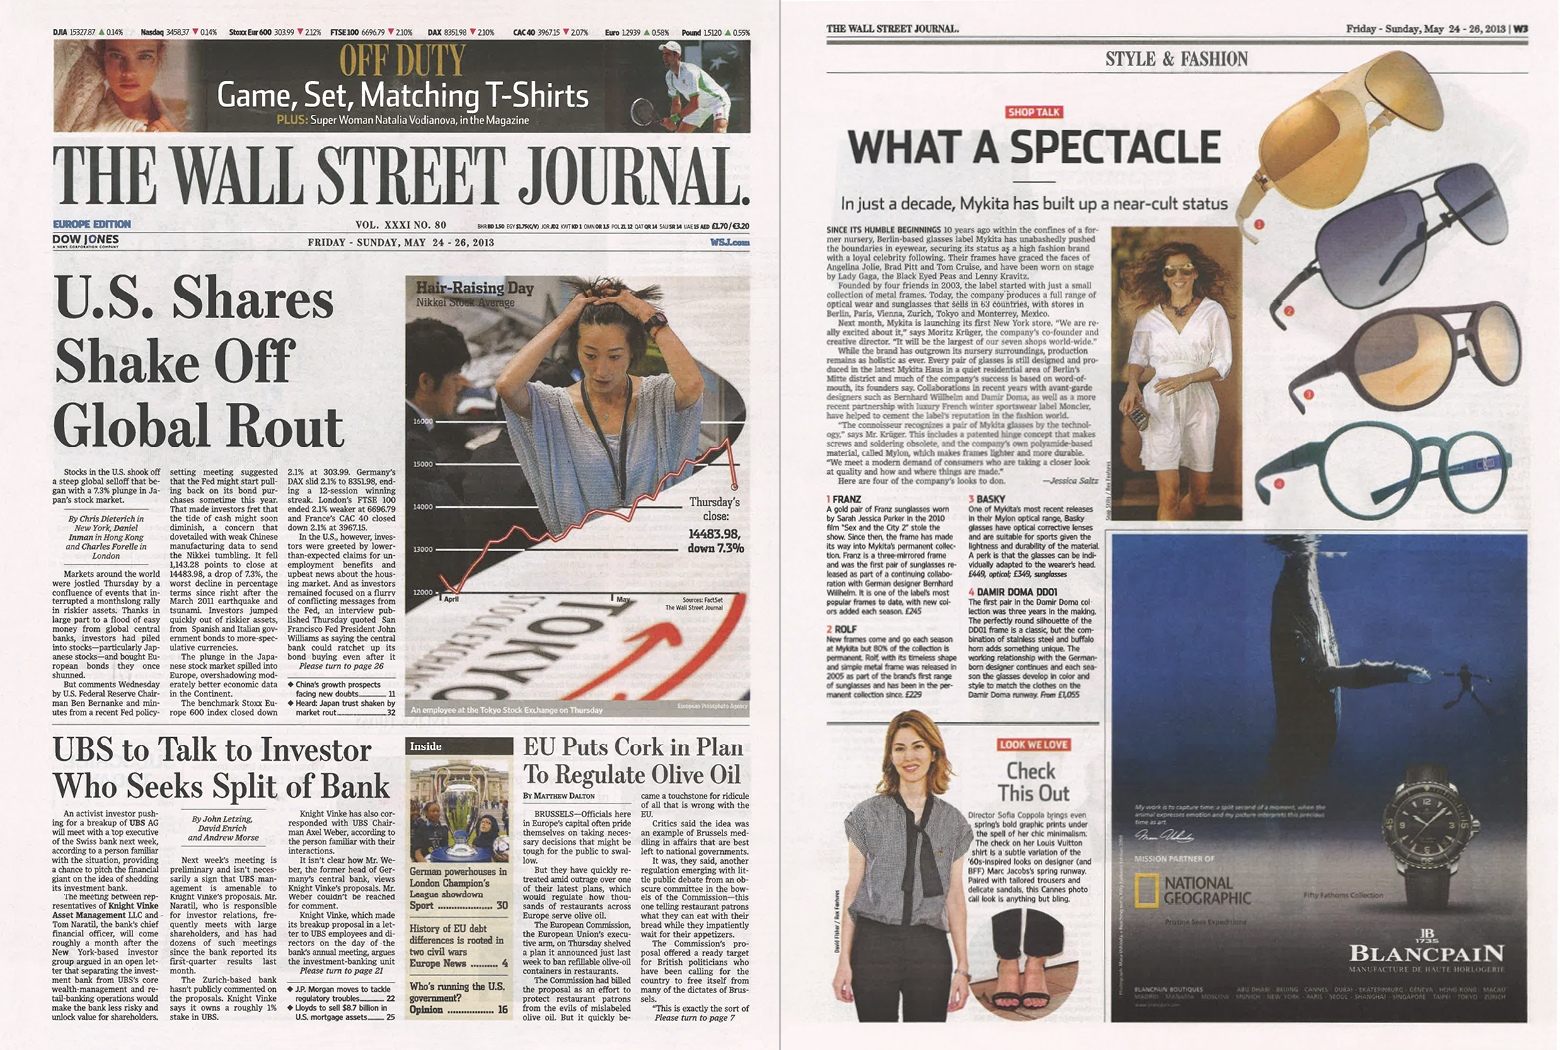 MYKITA Clipping Thewallstreetjournal Europe